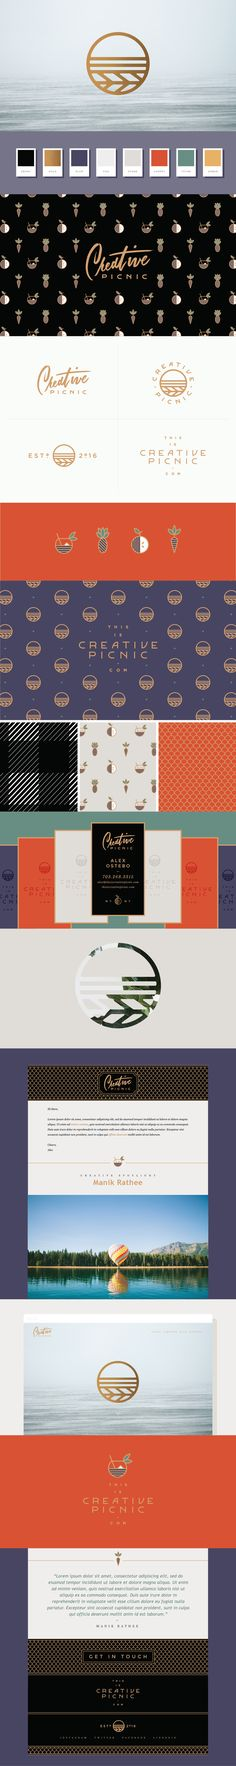 Creative Picnic - Logo & Brand Identity Design by Melissa Yeager